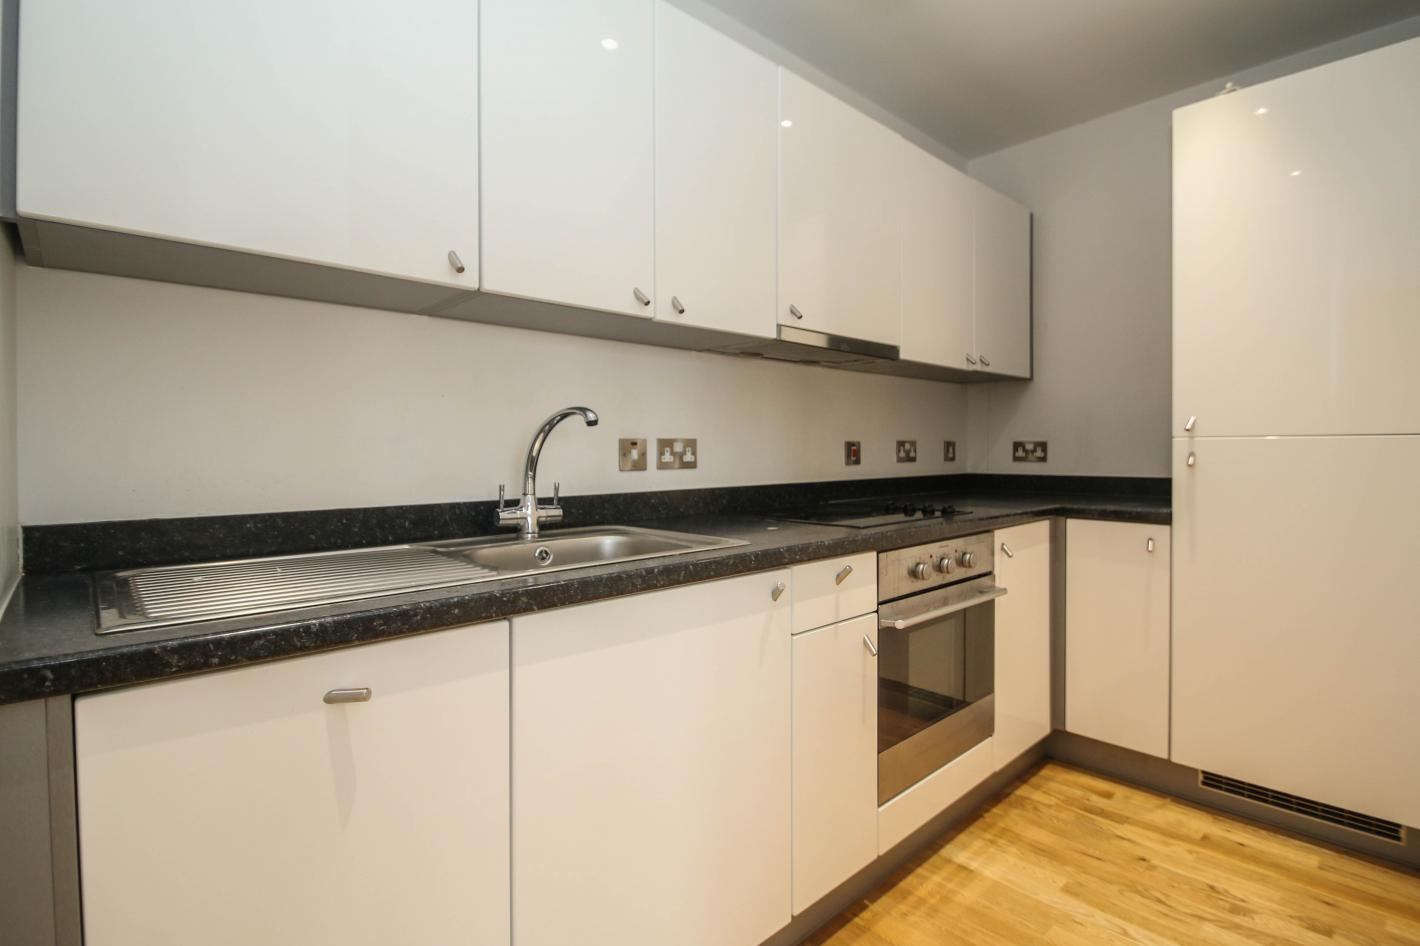 white kitchen, black worktops, built in oven, laminate flooring